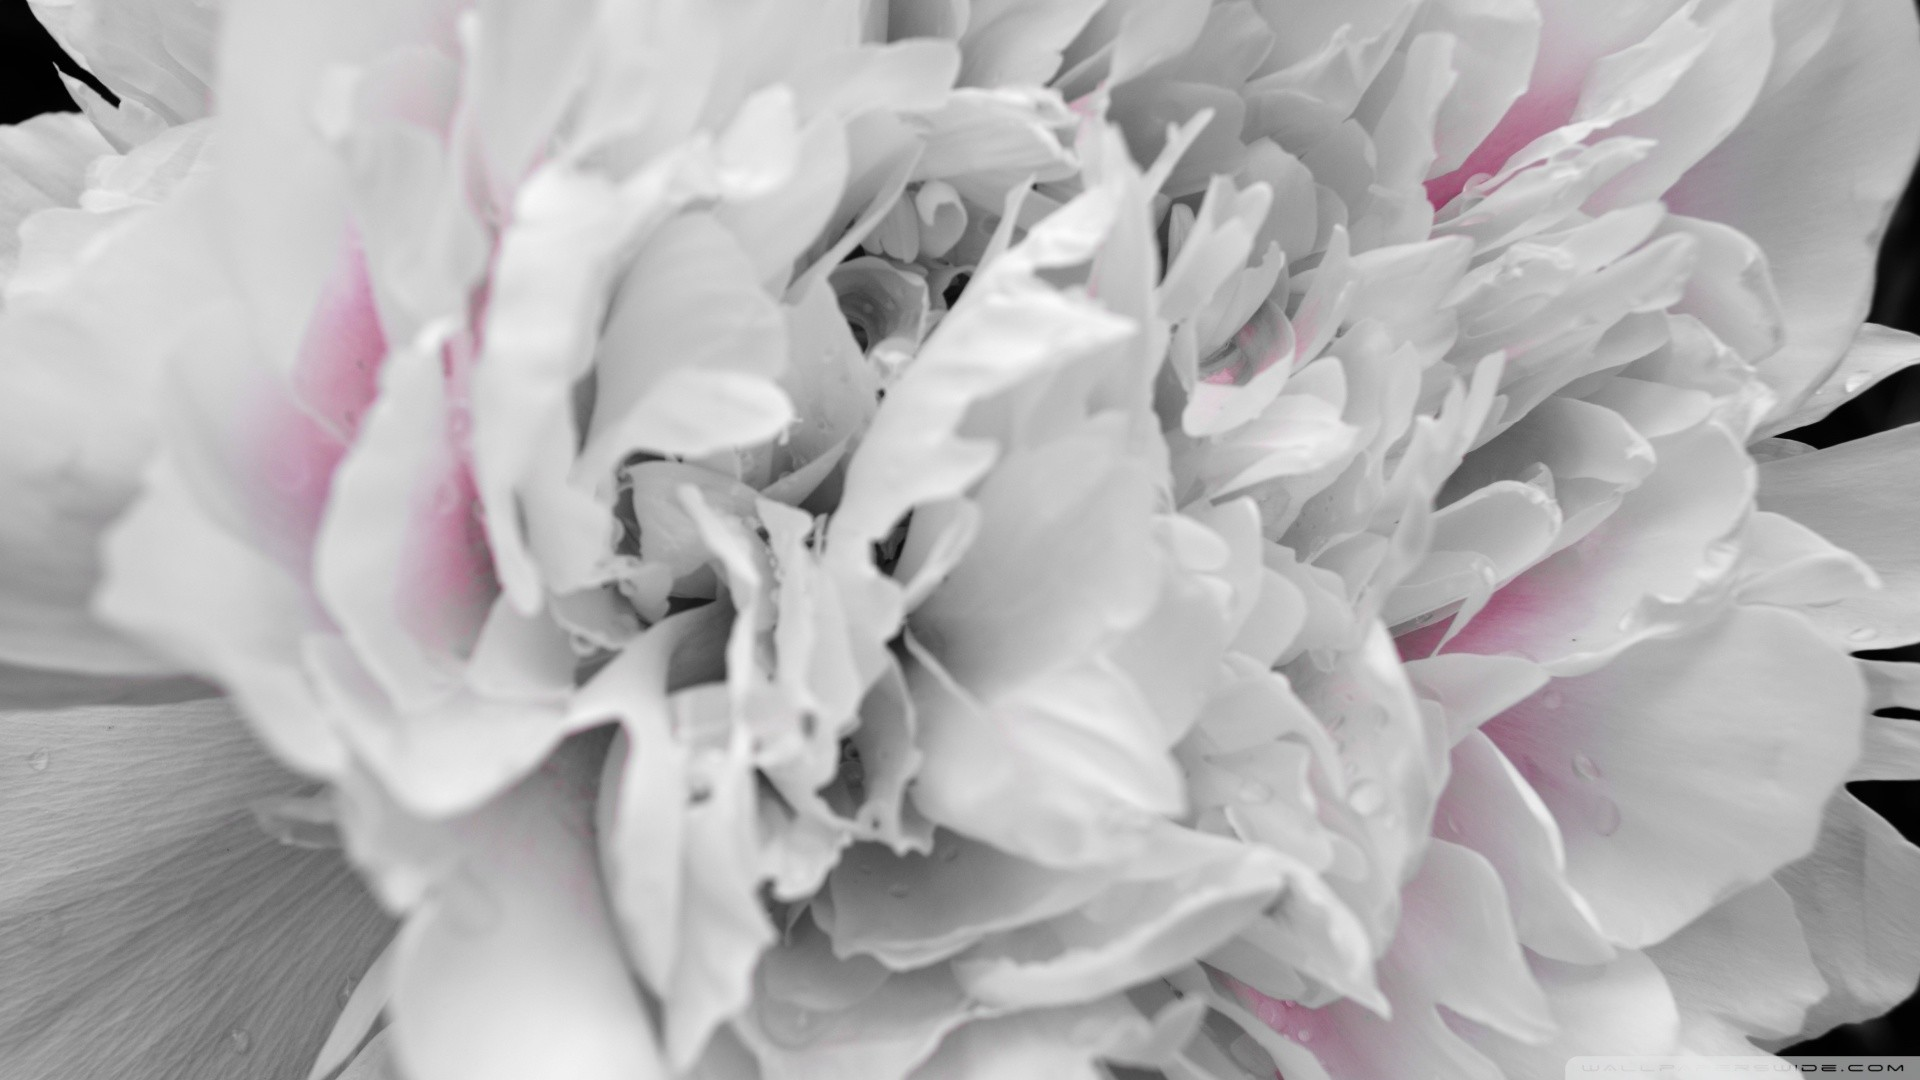 Res: 1920x1080, Peony Image Download Free.